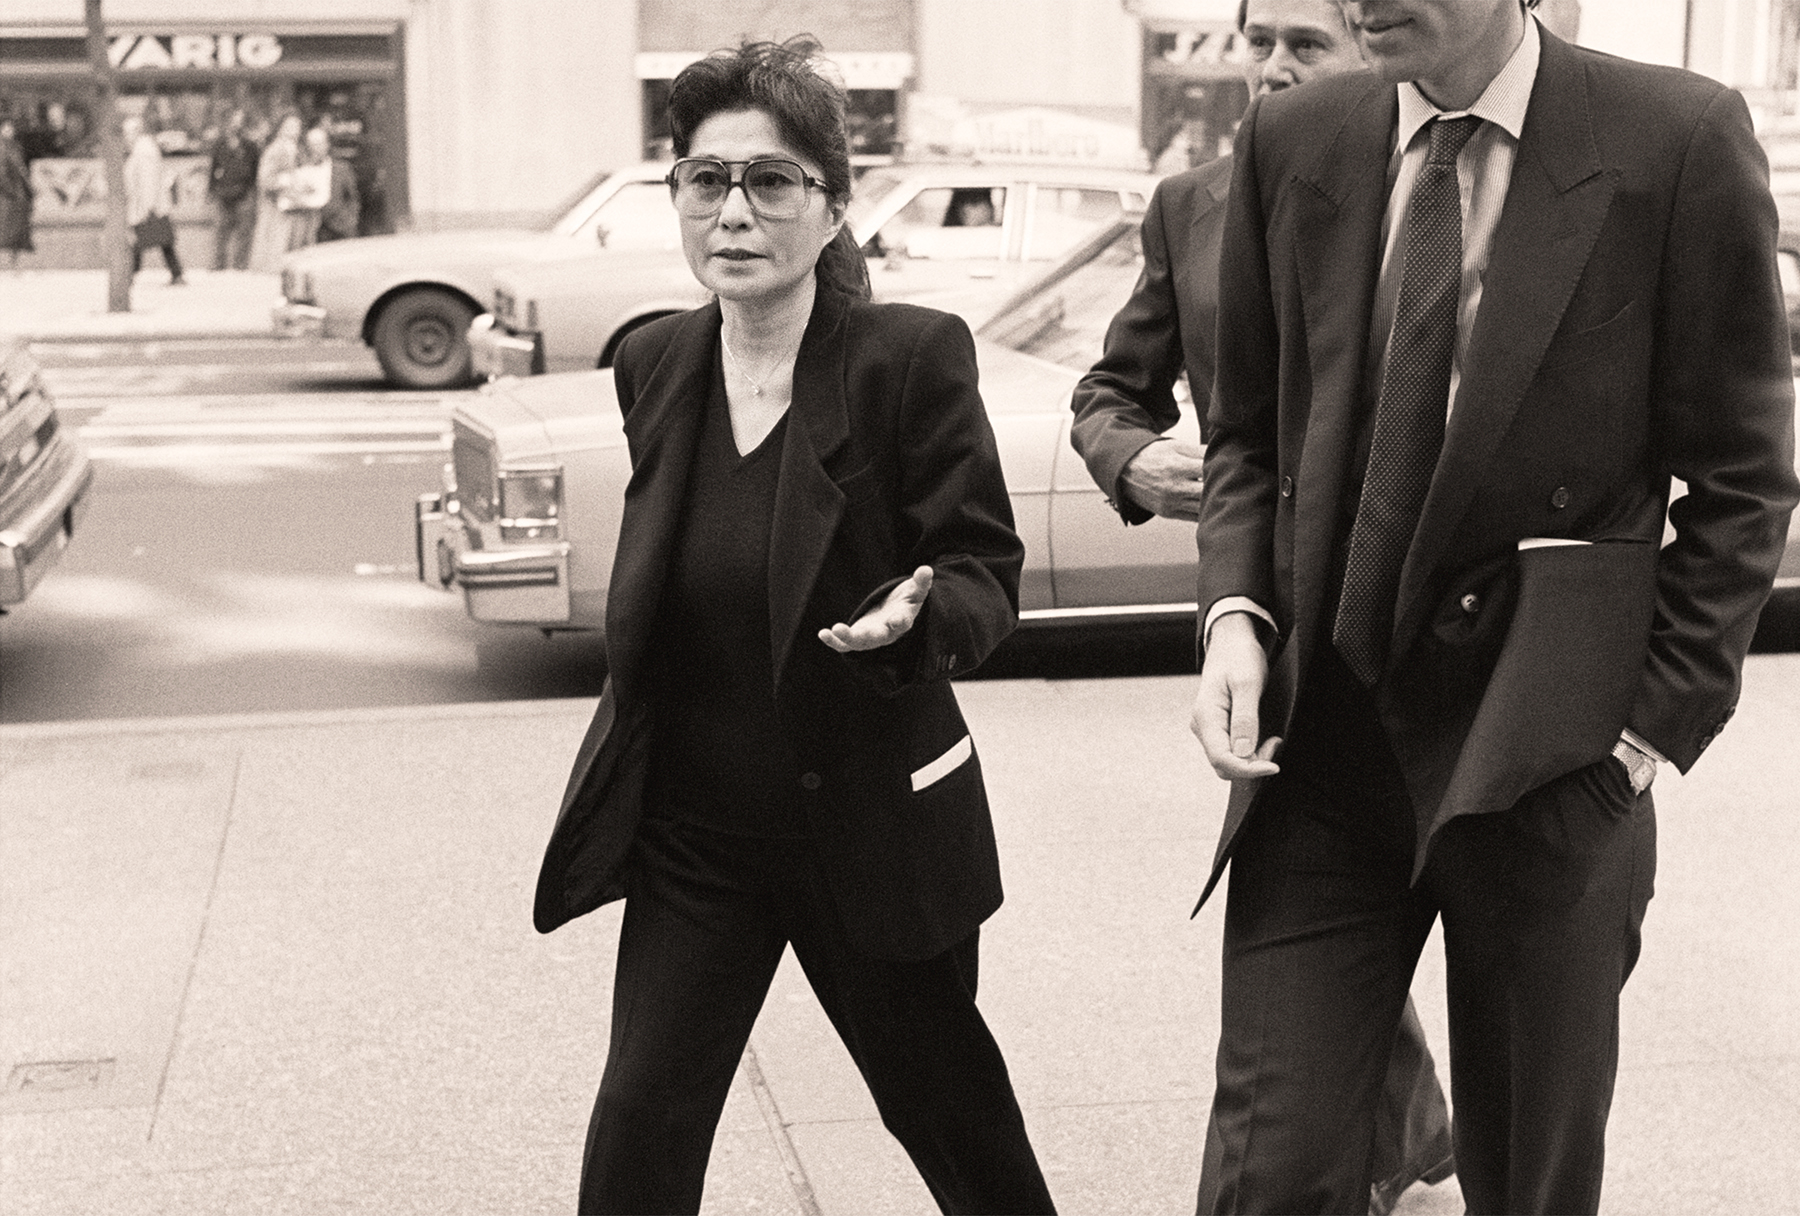 Yoko Ono and Guest